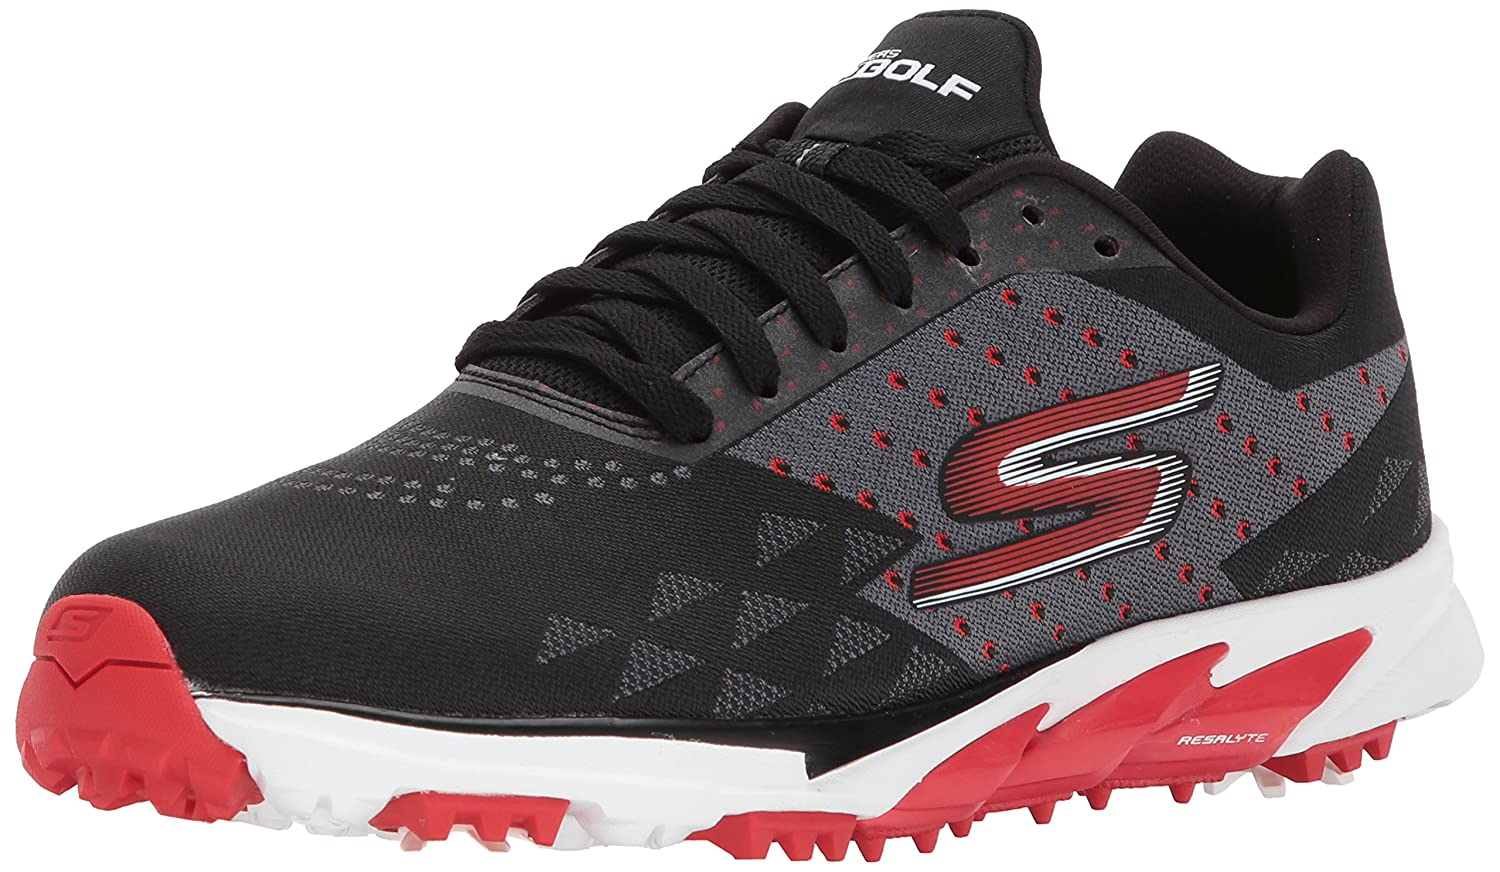 Skechers Men's Go Golf Blade 2 Golf Shoe B06XSCLXP7 12 D(M) US|Black/Red